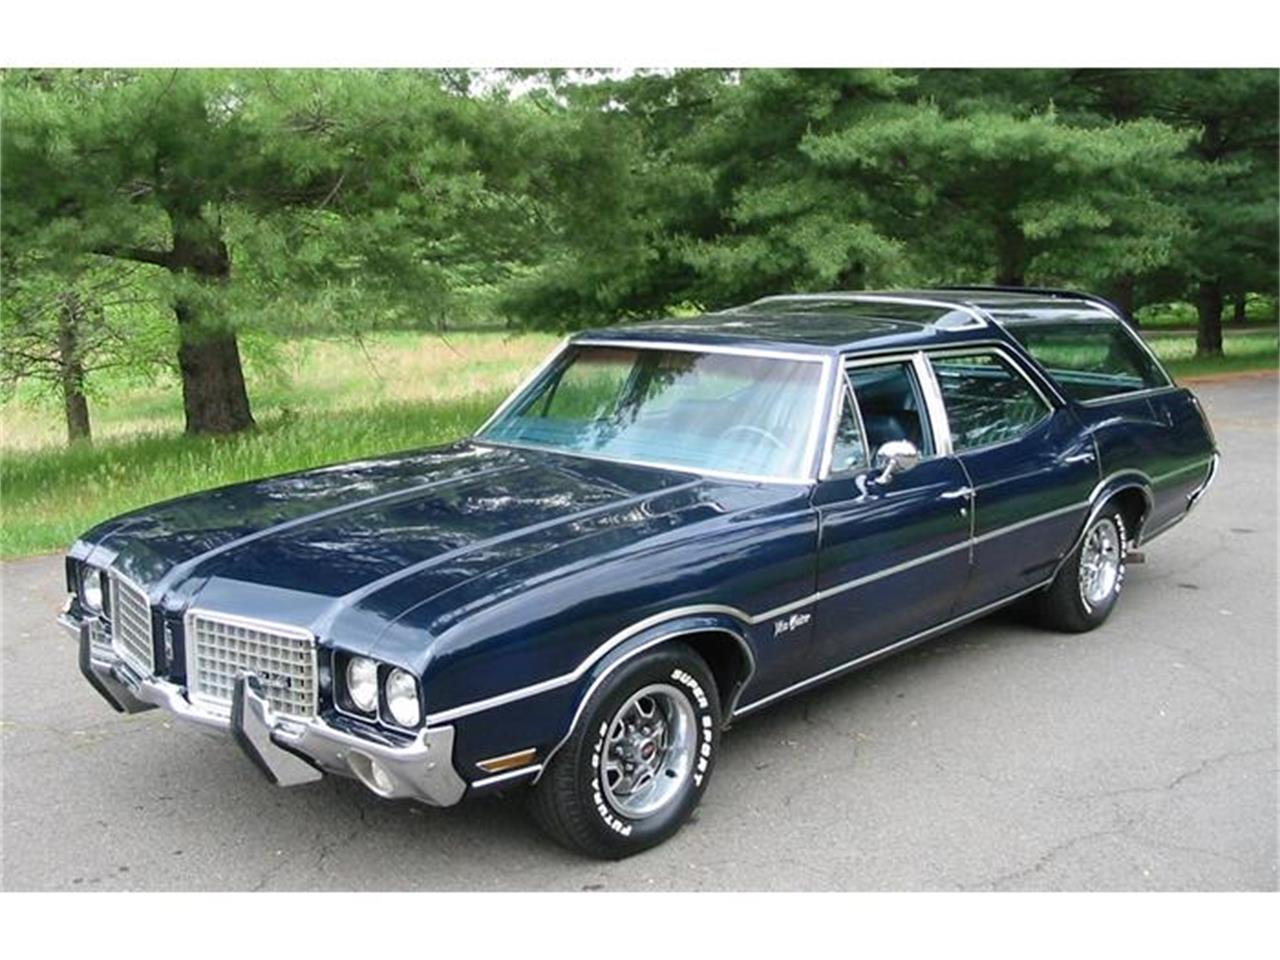 Trucks Under 5000 >> 1972 Oldsmobile Vista Cruiser for Sale | ClassicCars.com | CC-632833